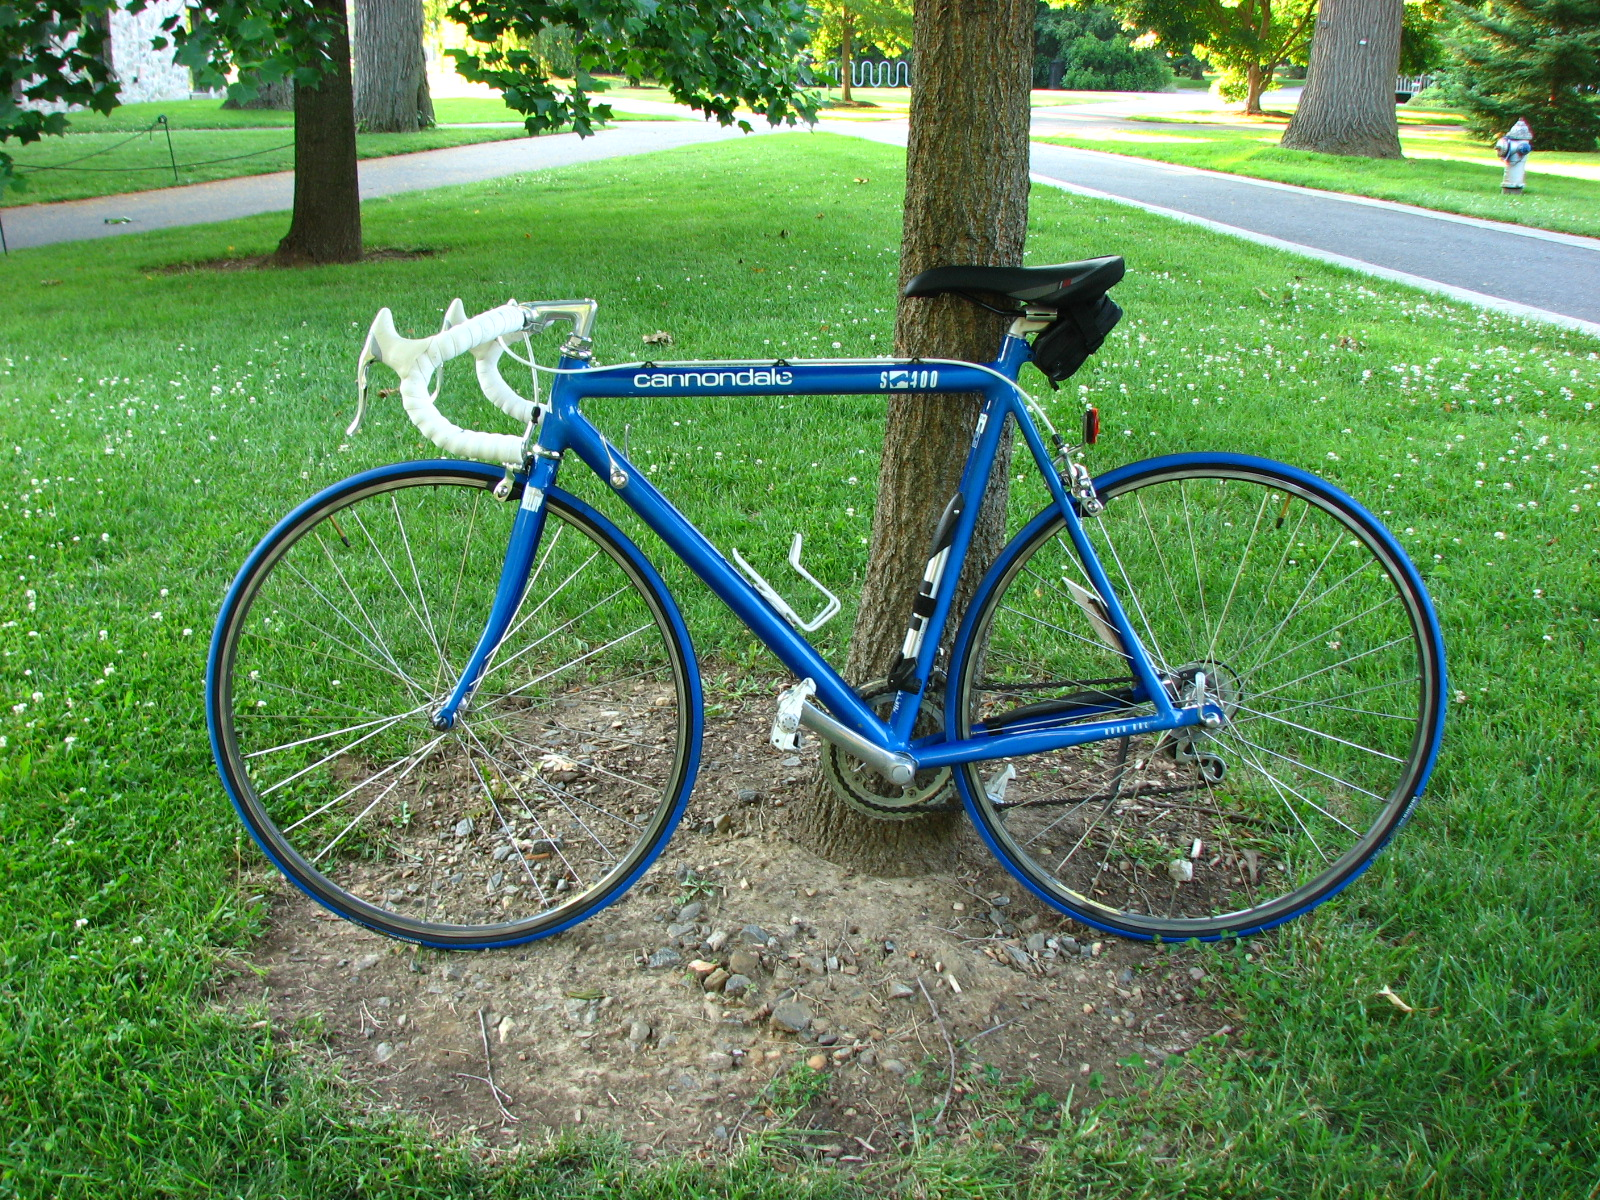 Bikes Craigslist Delaware Bike as it currently appears